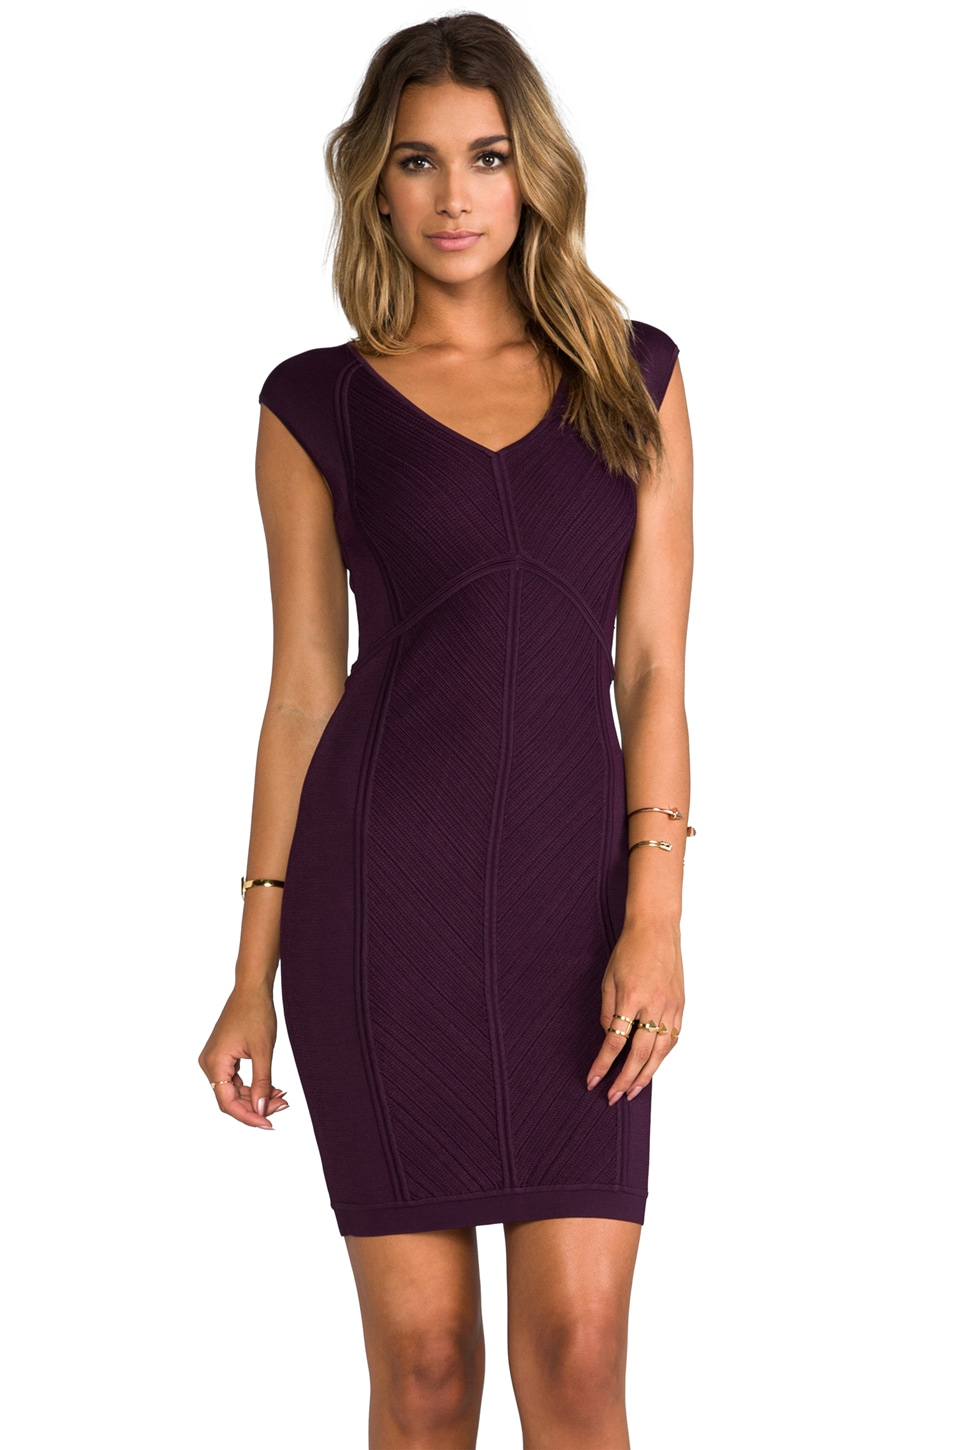 Diane von Furstenberg Cressida Dress in Brazen Plum